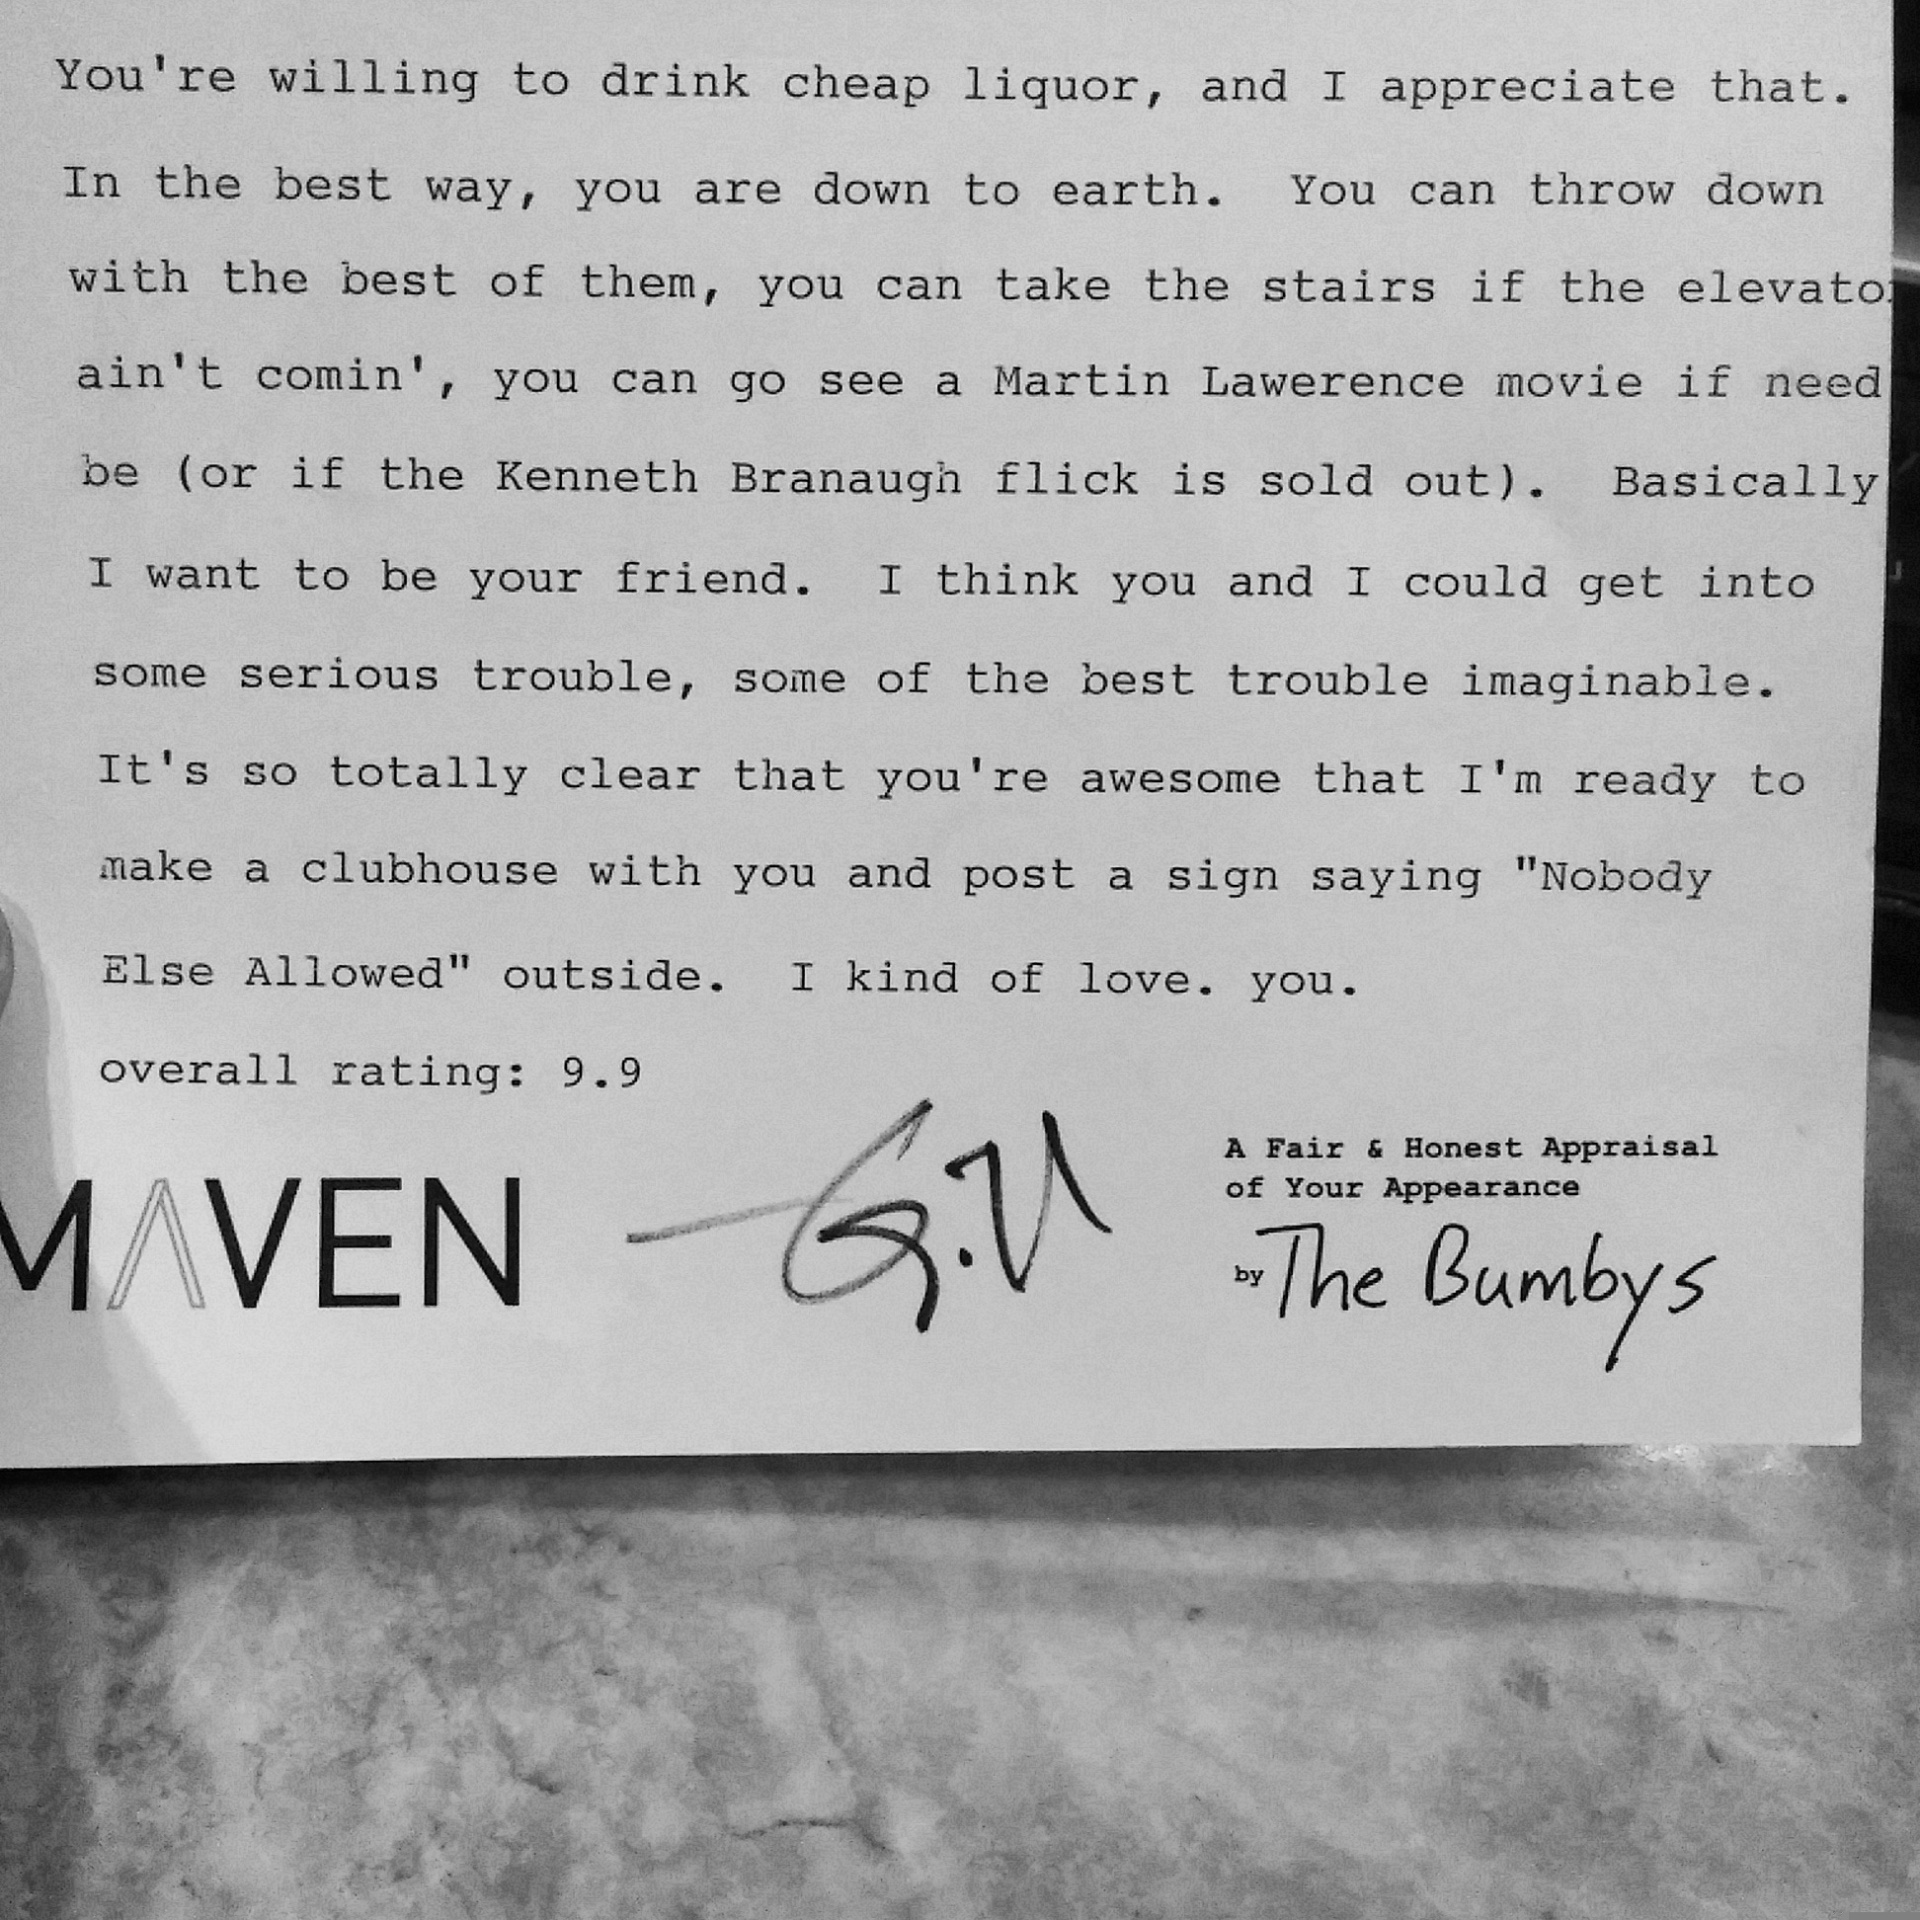 A review from The Bumbys at The Maven launch party January 2016.